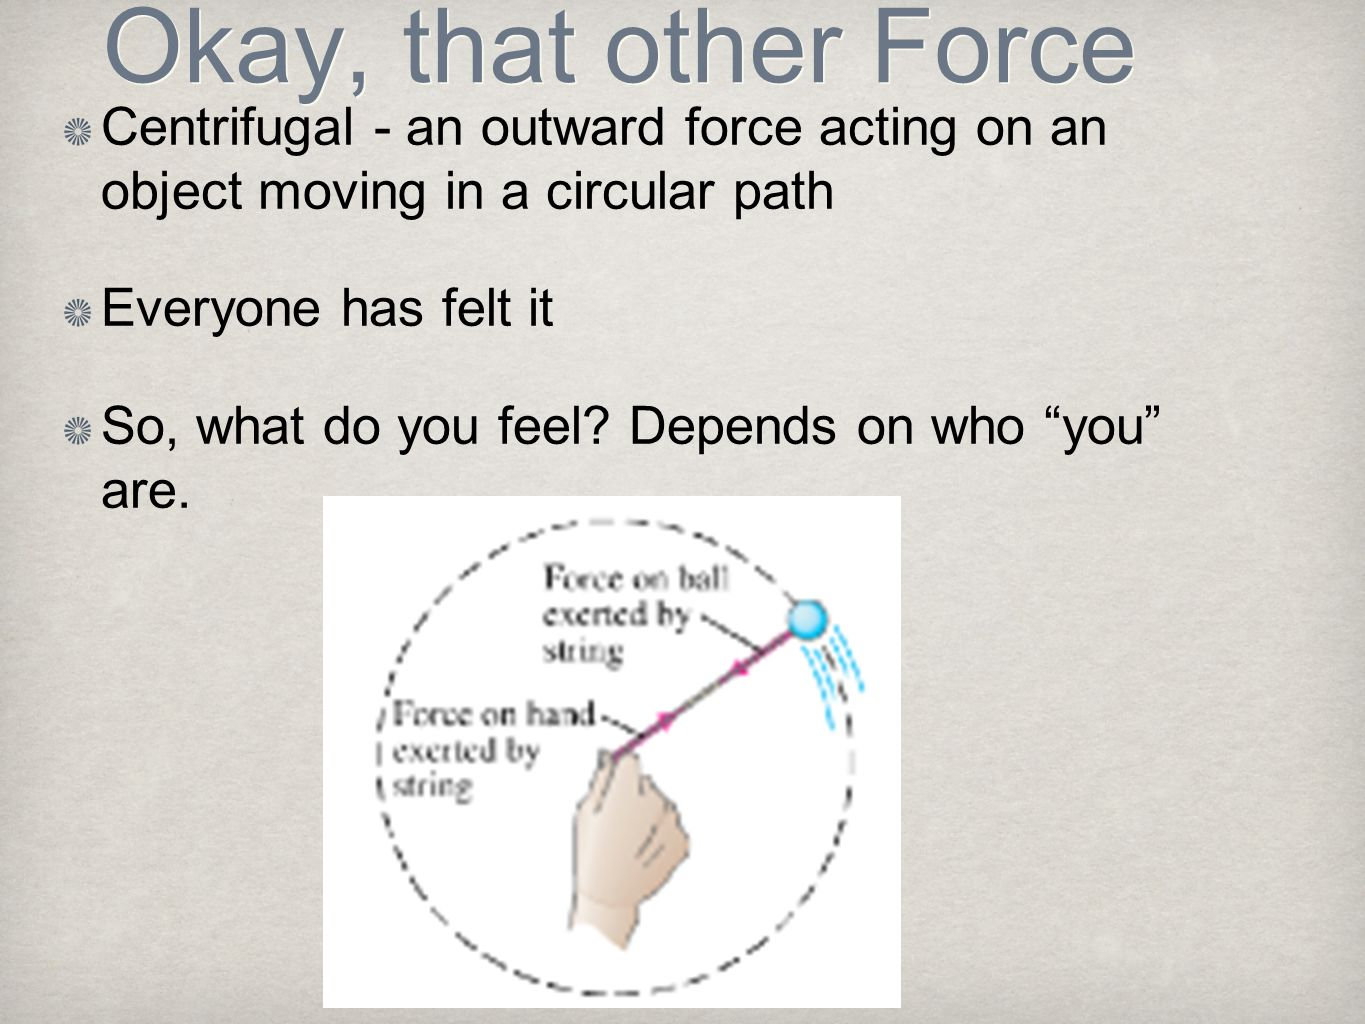 Okay, that other Force Centrifugal - an outward force acting on an object moving in a circular path Everyone has felt it So, what do you feel? Depends